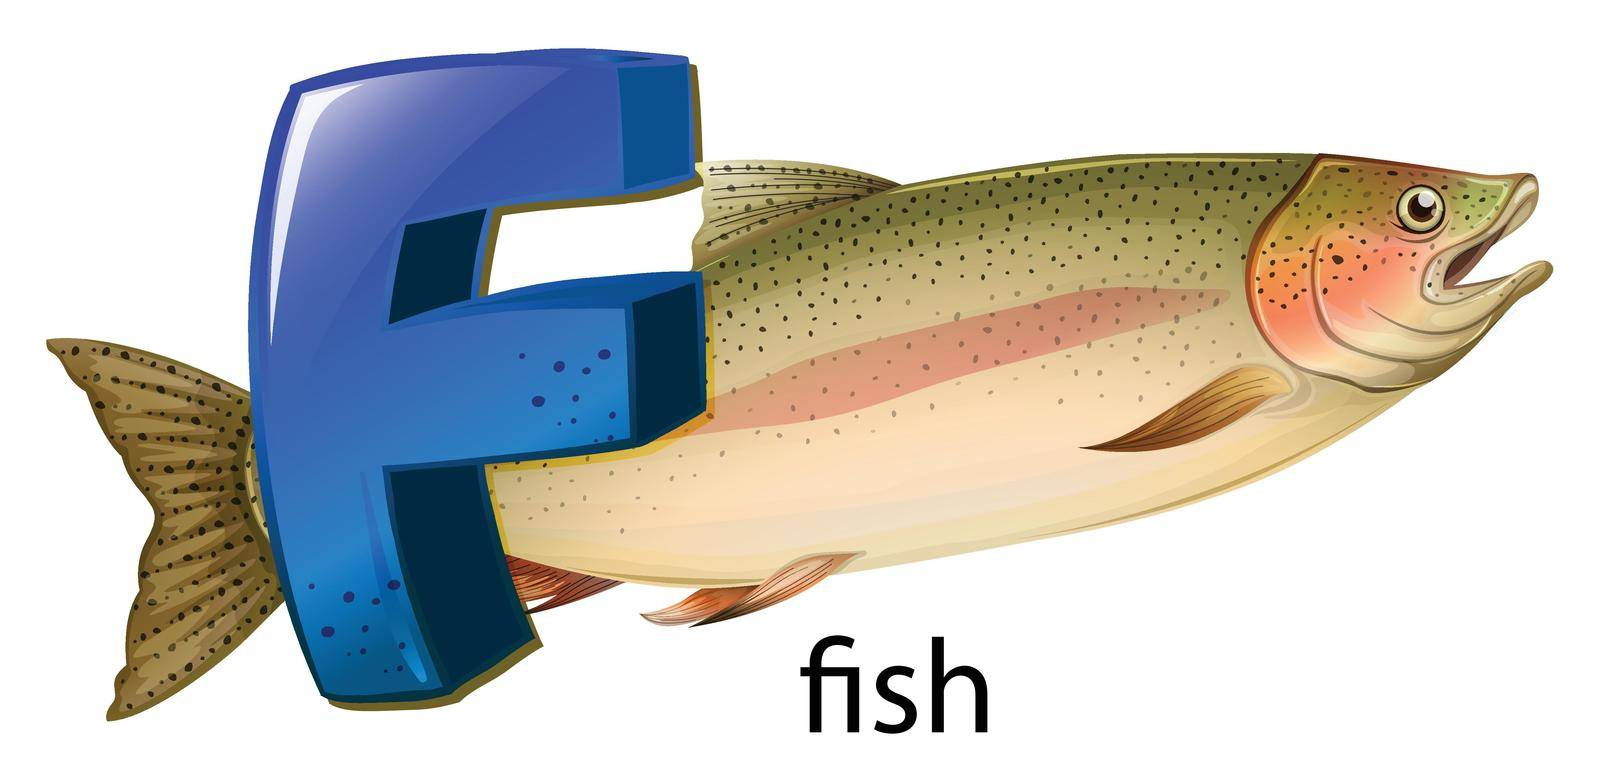 Illustration of a letter F for fish on a white background